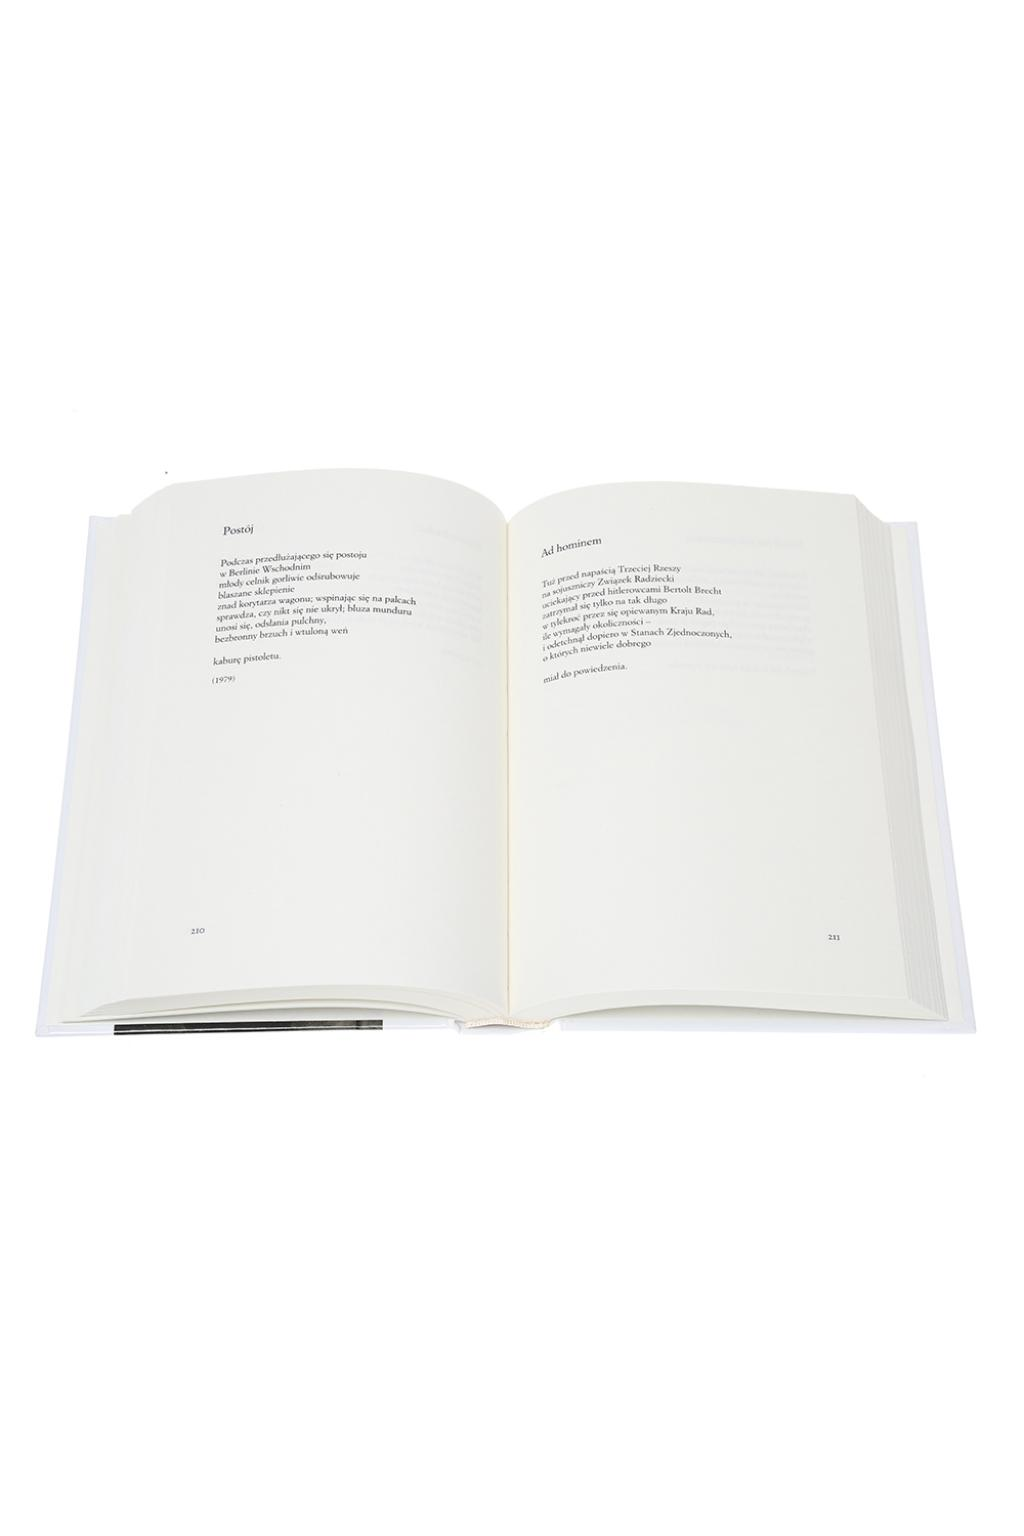 'Selected poems' book